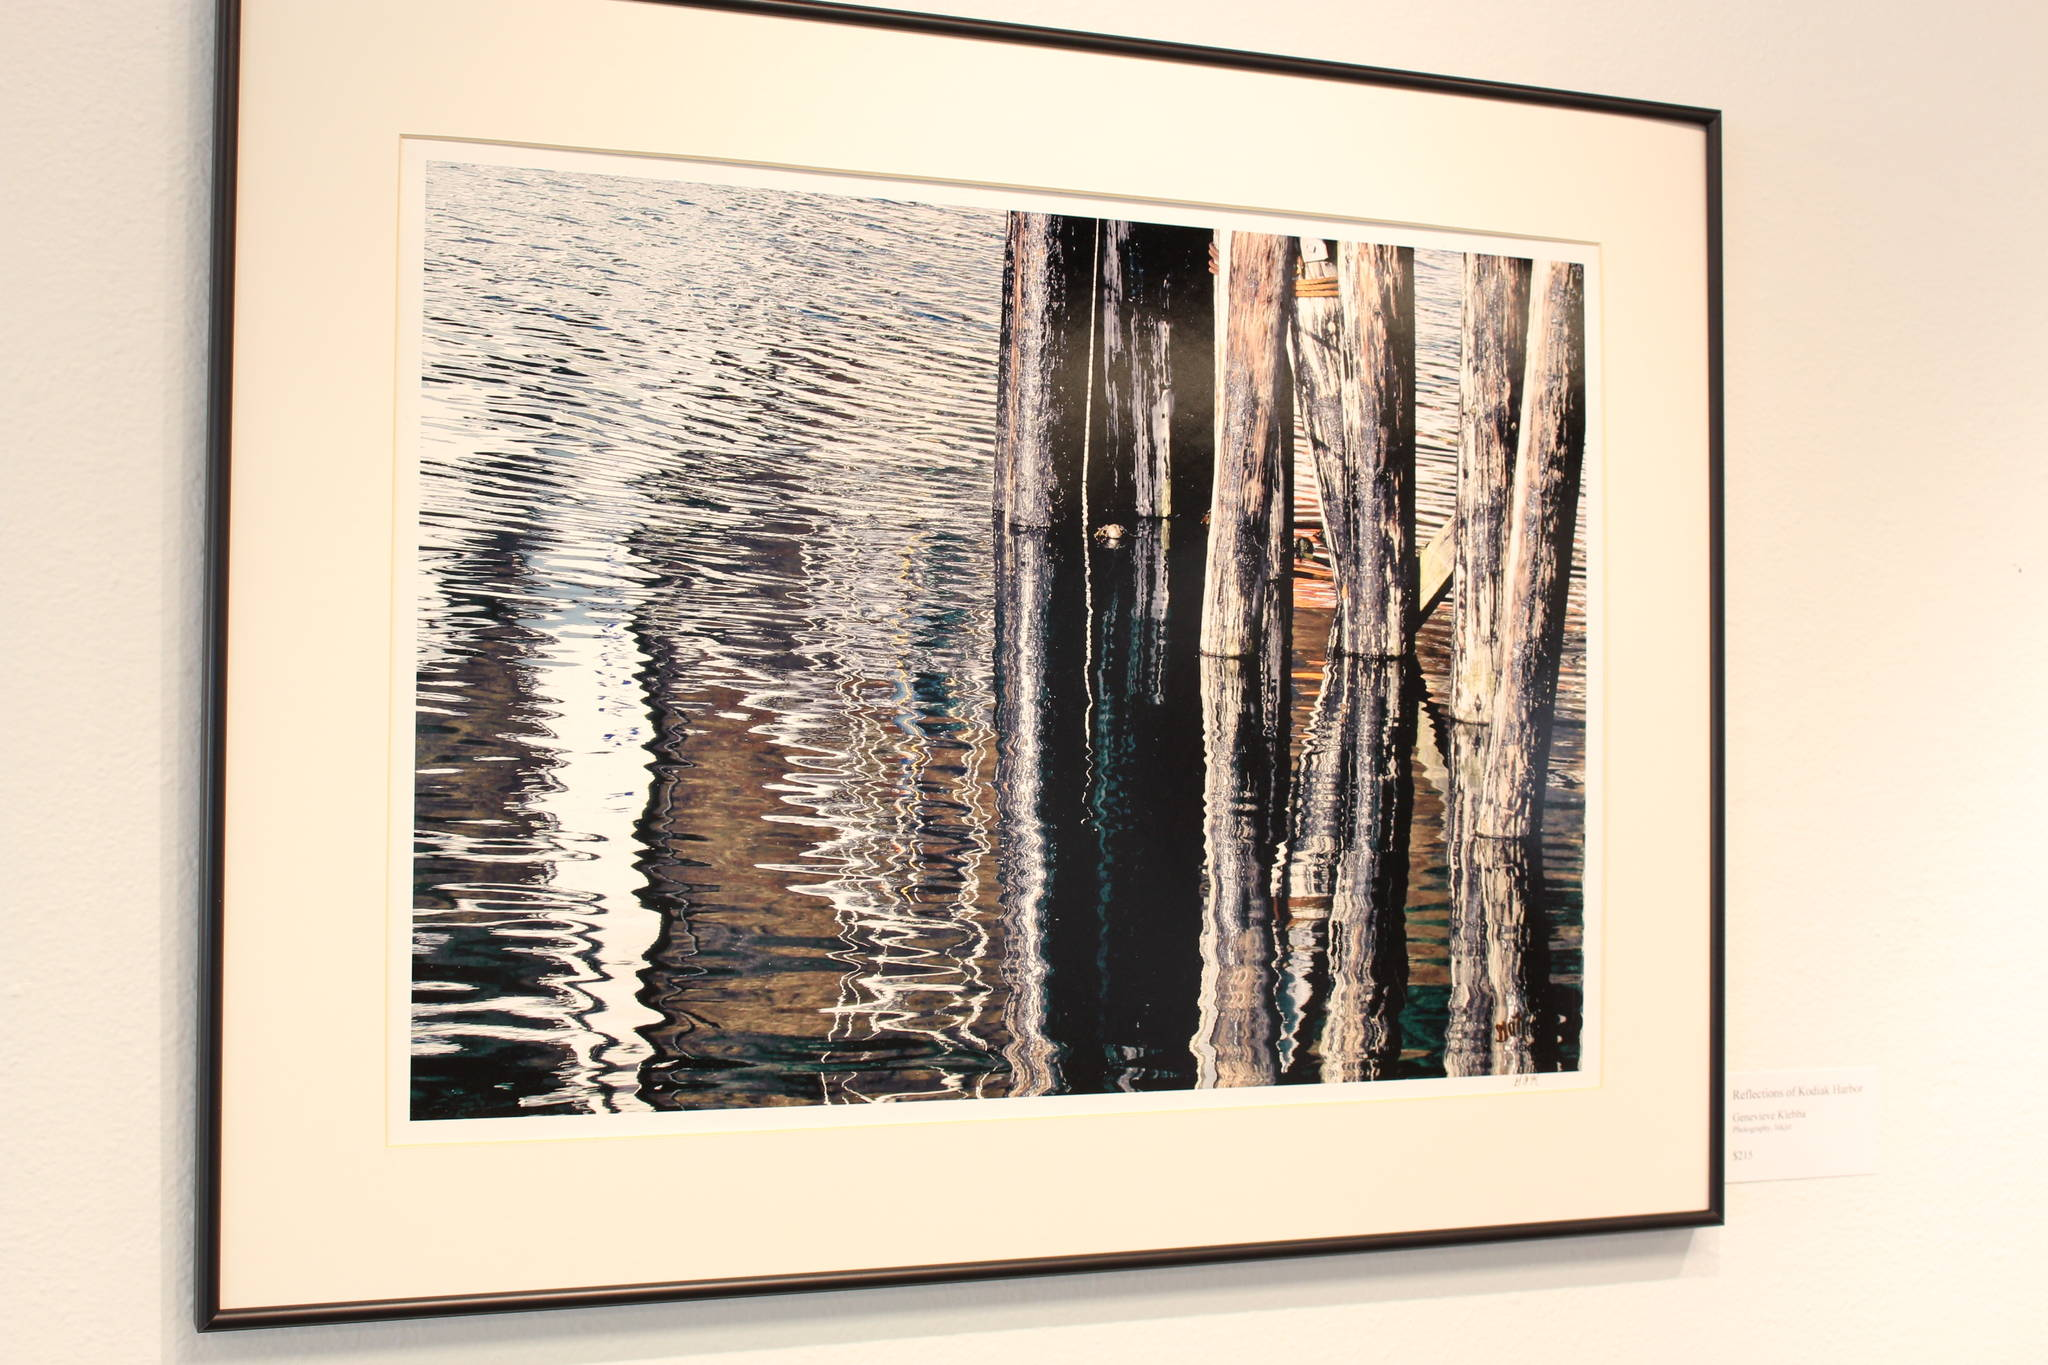 Reflections of Kodiak Harbor, a piece by local photographer Genevieve Klebba, is seen here on display at the Kenai Fine Art Center in Kenai, Alaska on March 18, 2020. (Photo by Brian Mazurek/Peninsula Clarion)